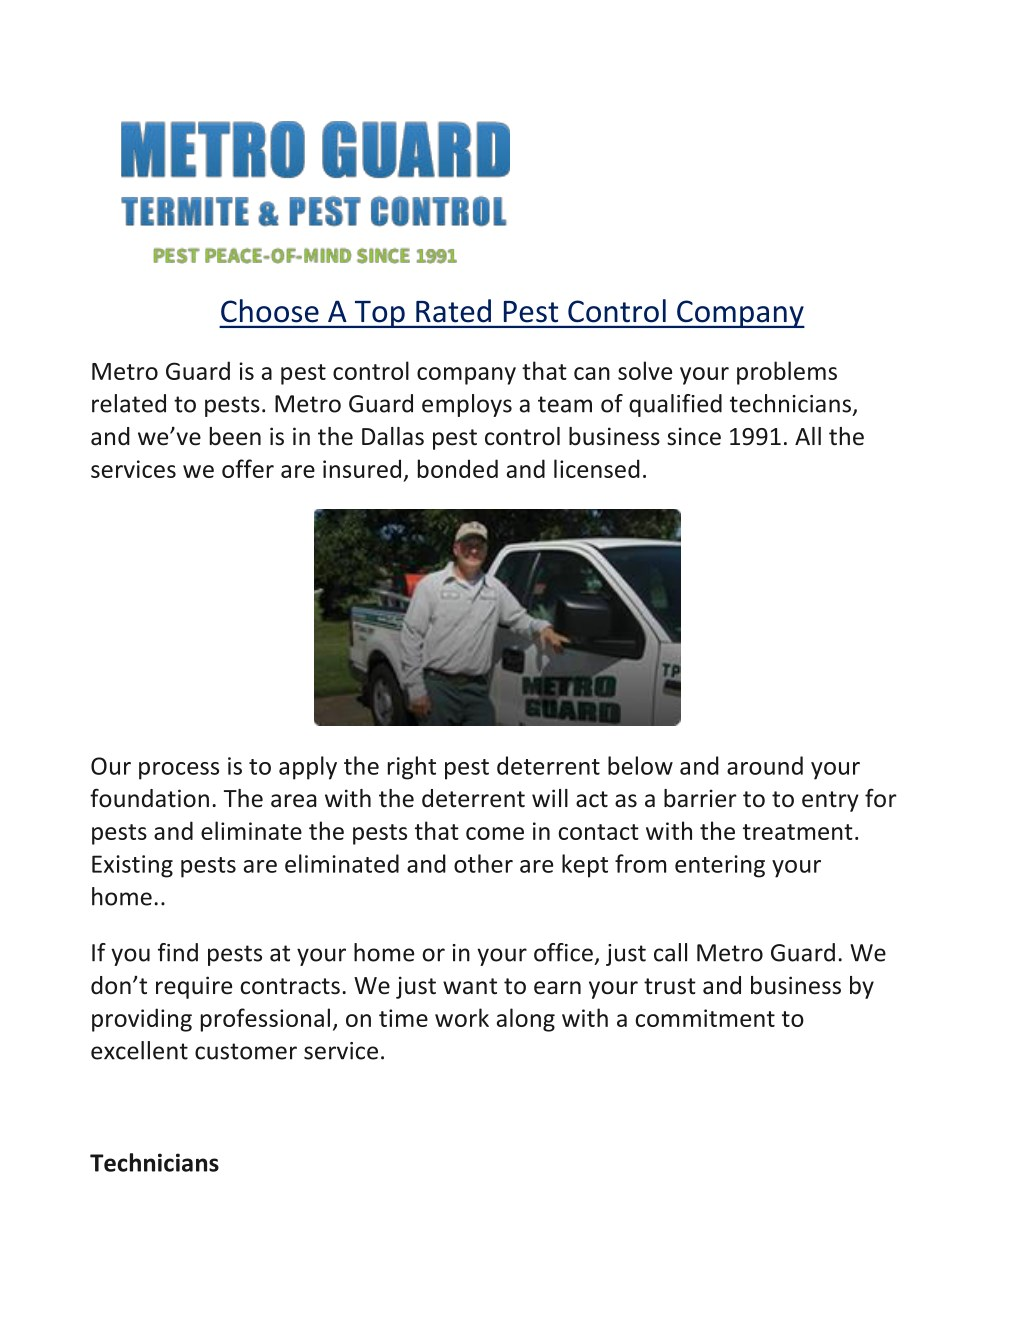 Ppt Choose A Top Rated Pest Control Company Powerpoint Presentation Free Download Id 7640988